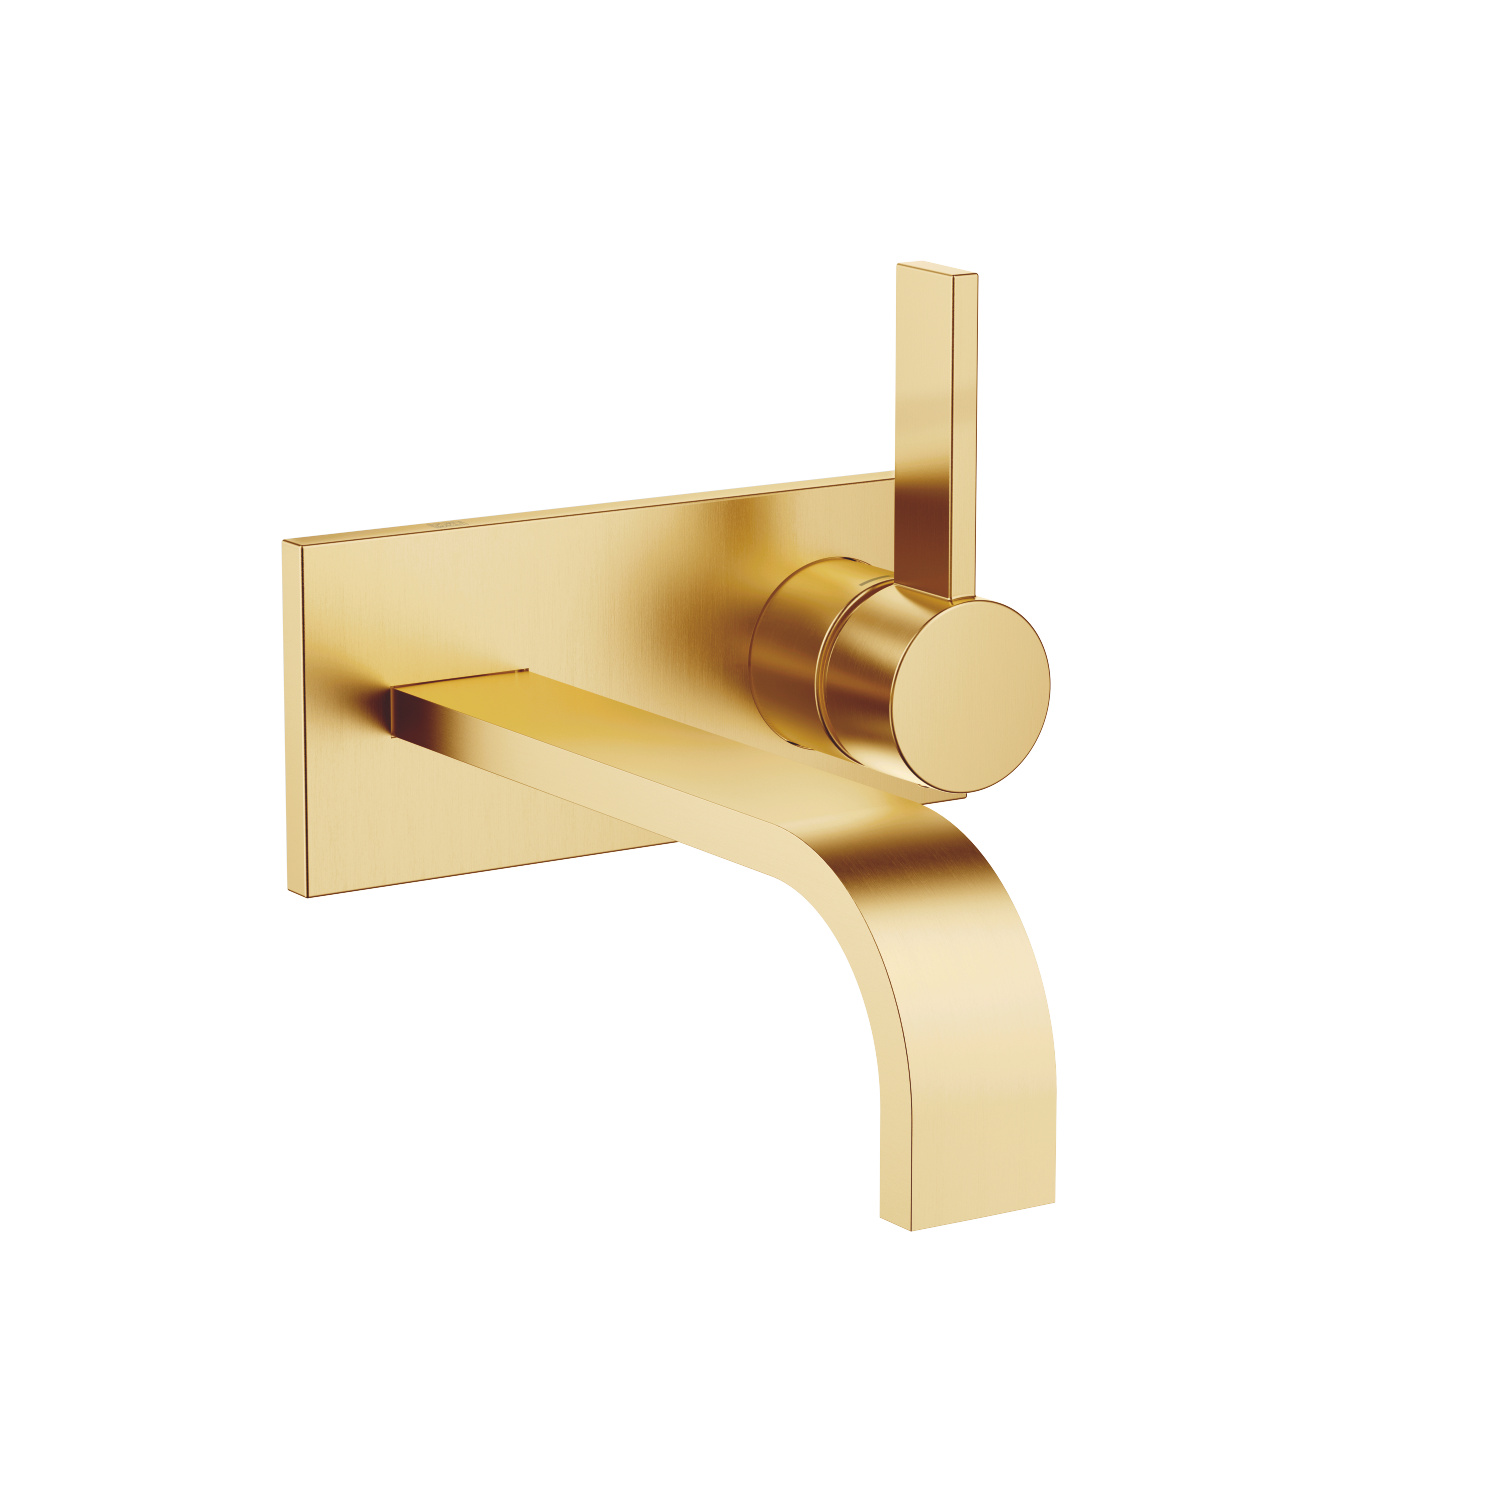 Wall-mounted single-lever basin mixer with cover plate without pop-up waste - brushed Durabrass - 36 864 782-28